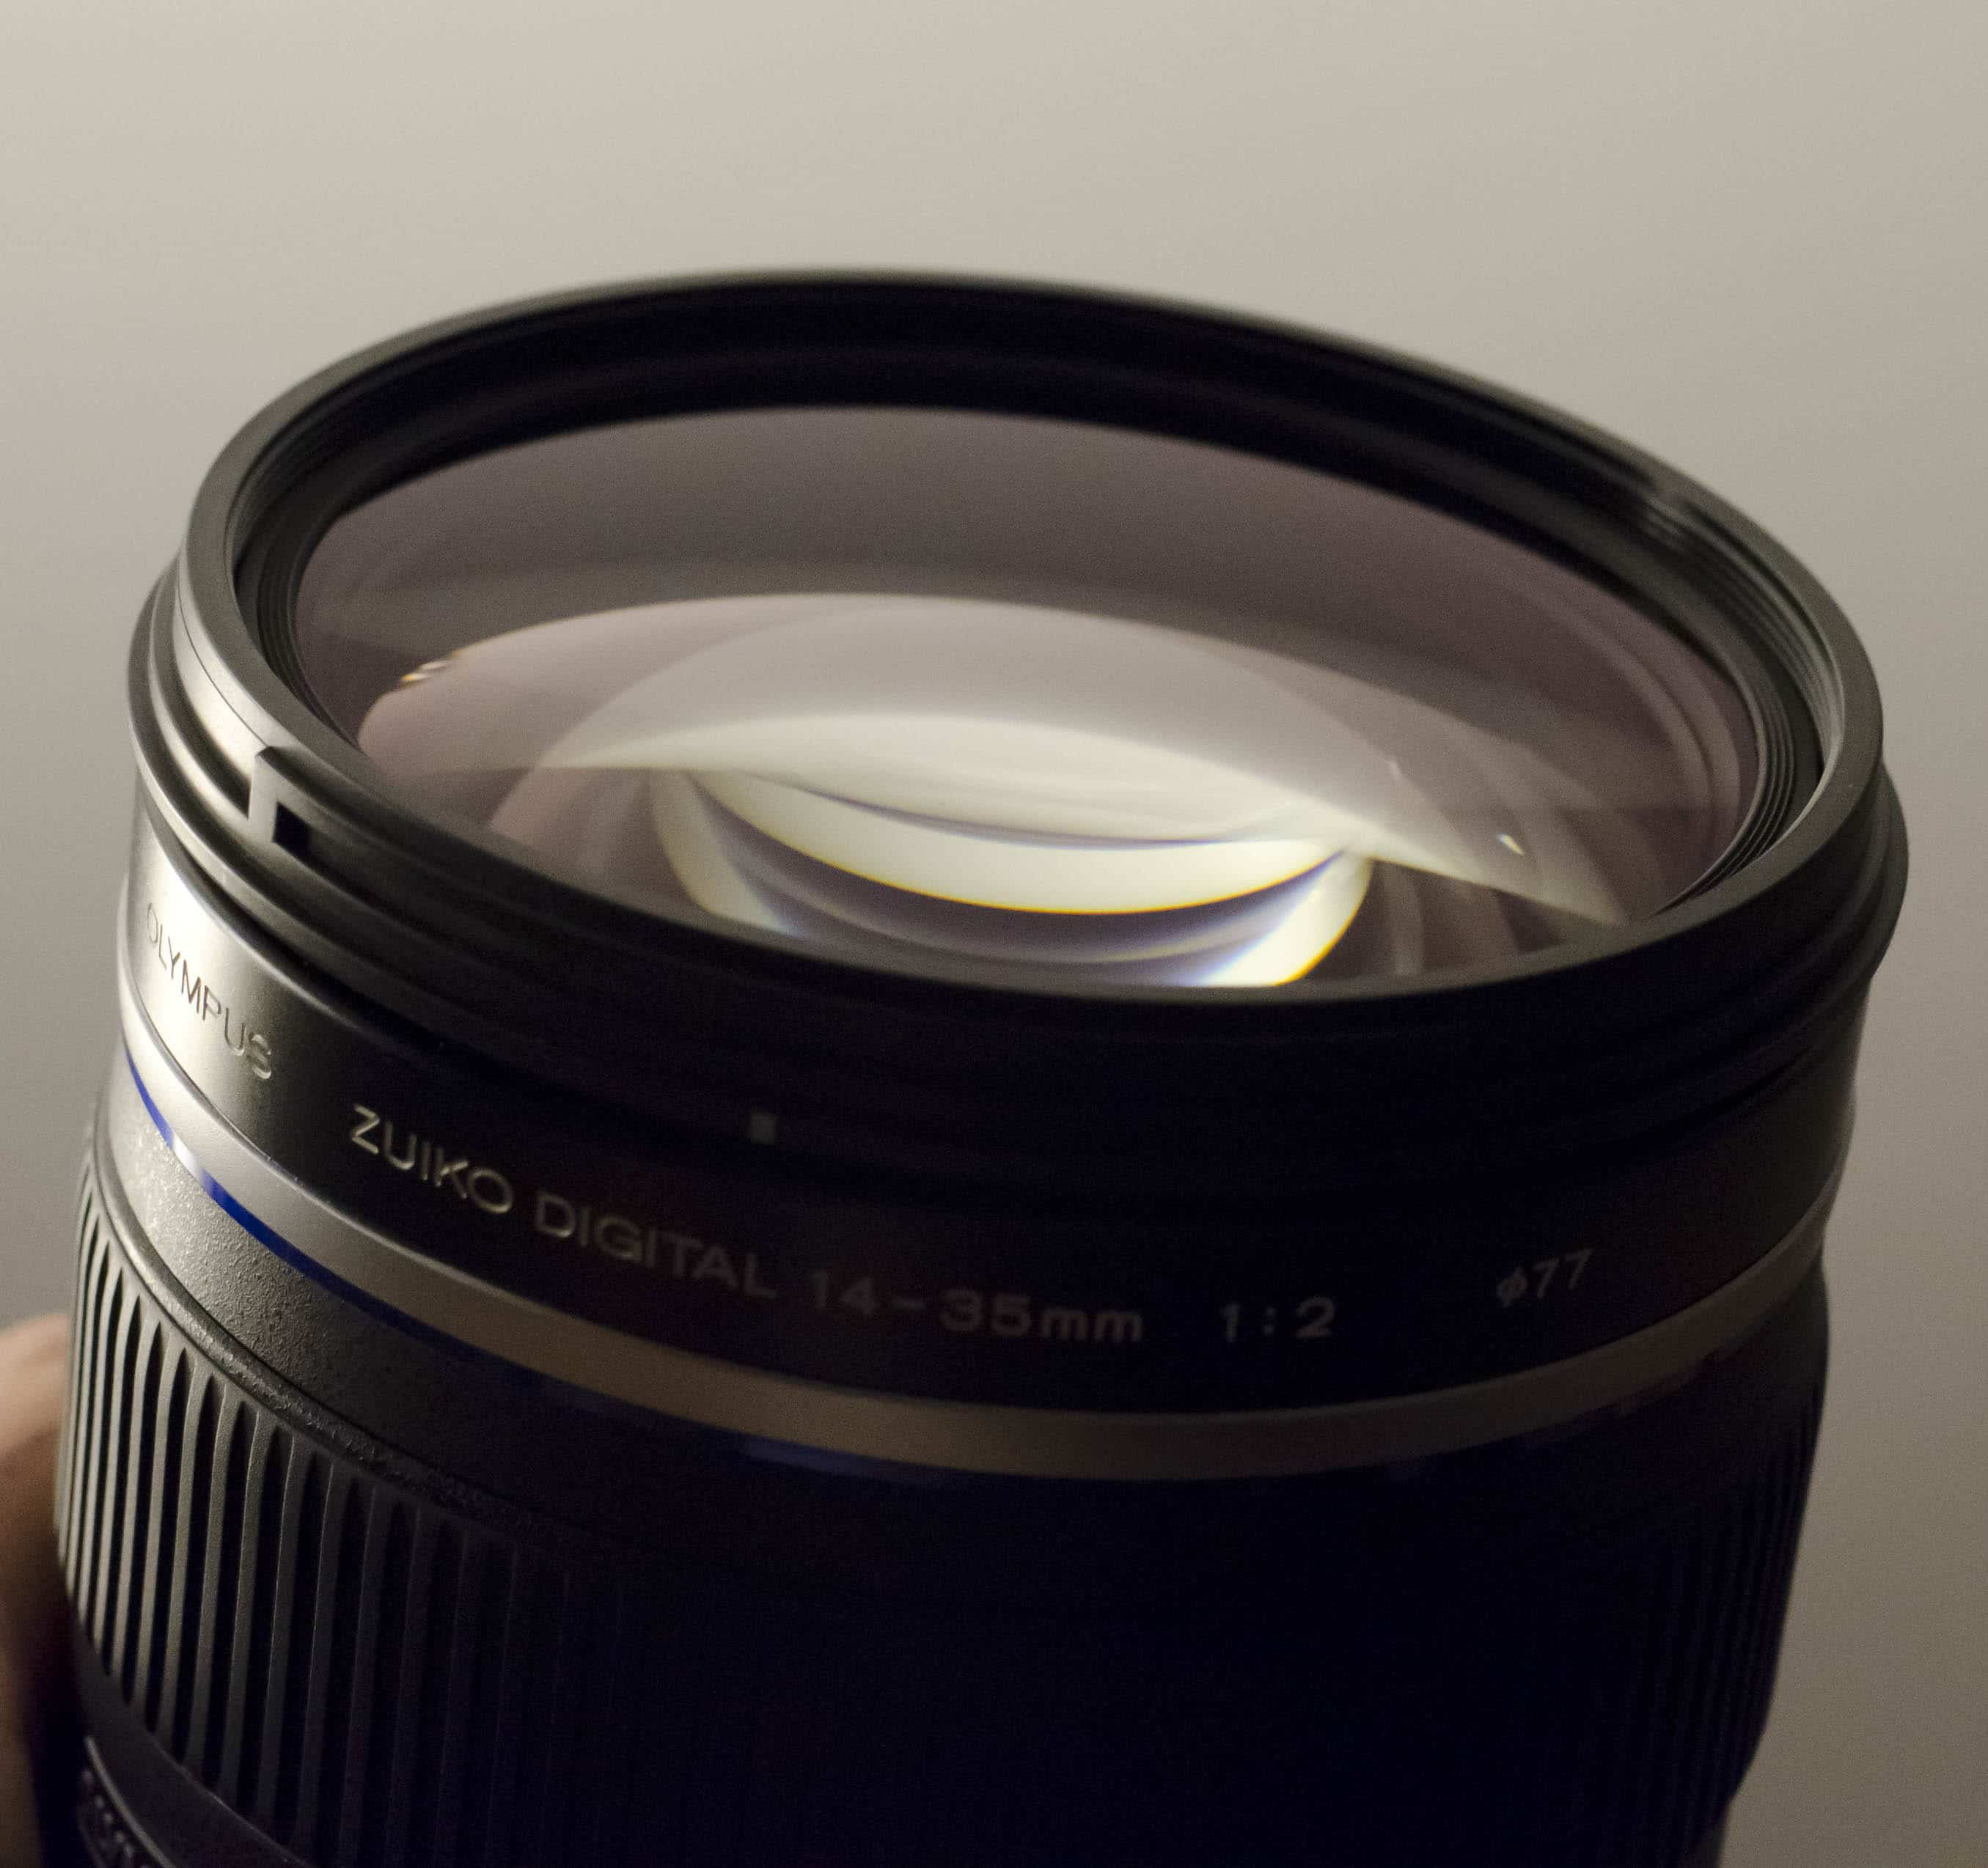 Olympus 14-35mm lens front glass